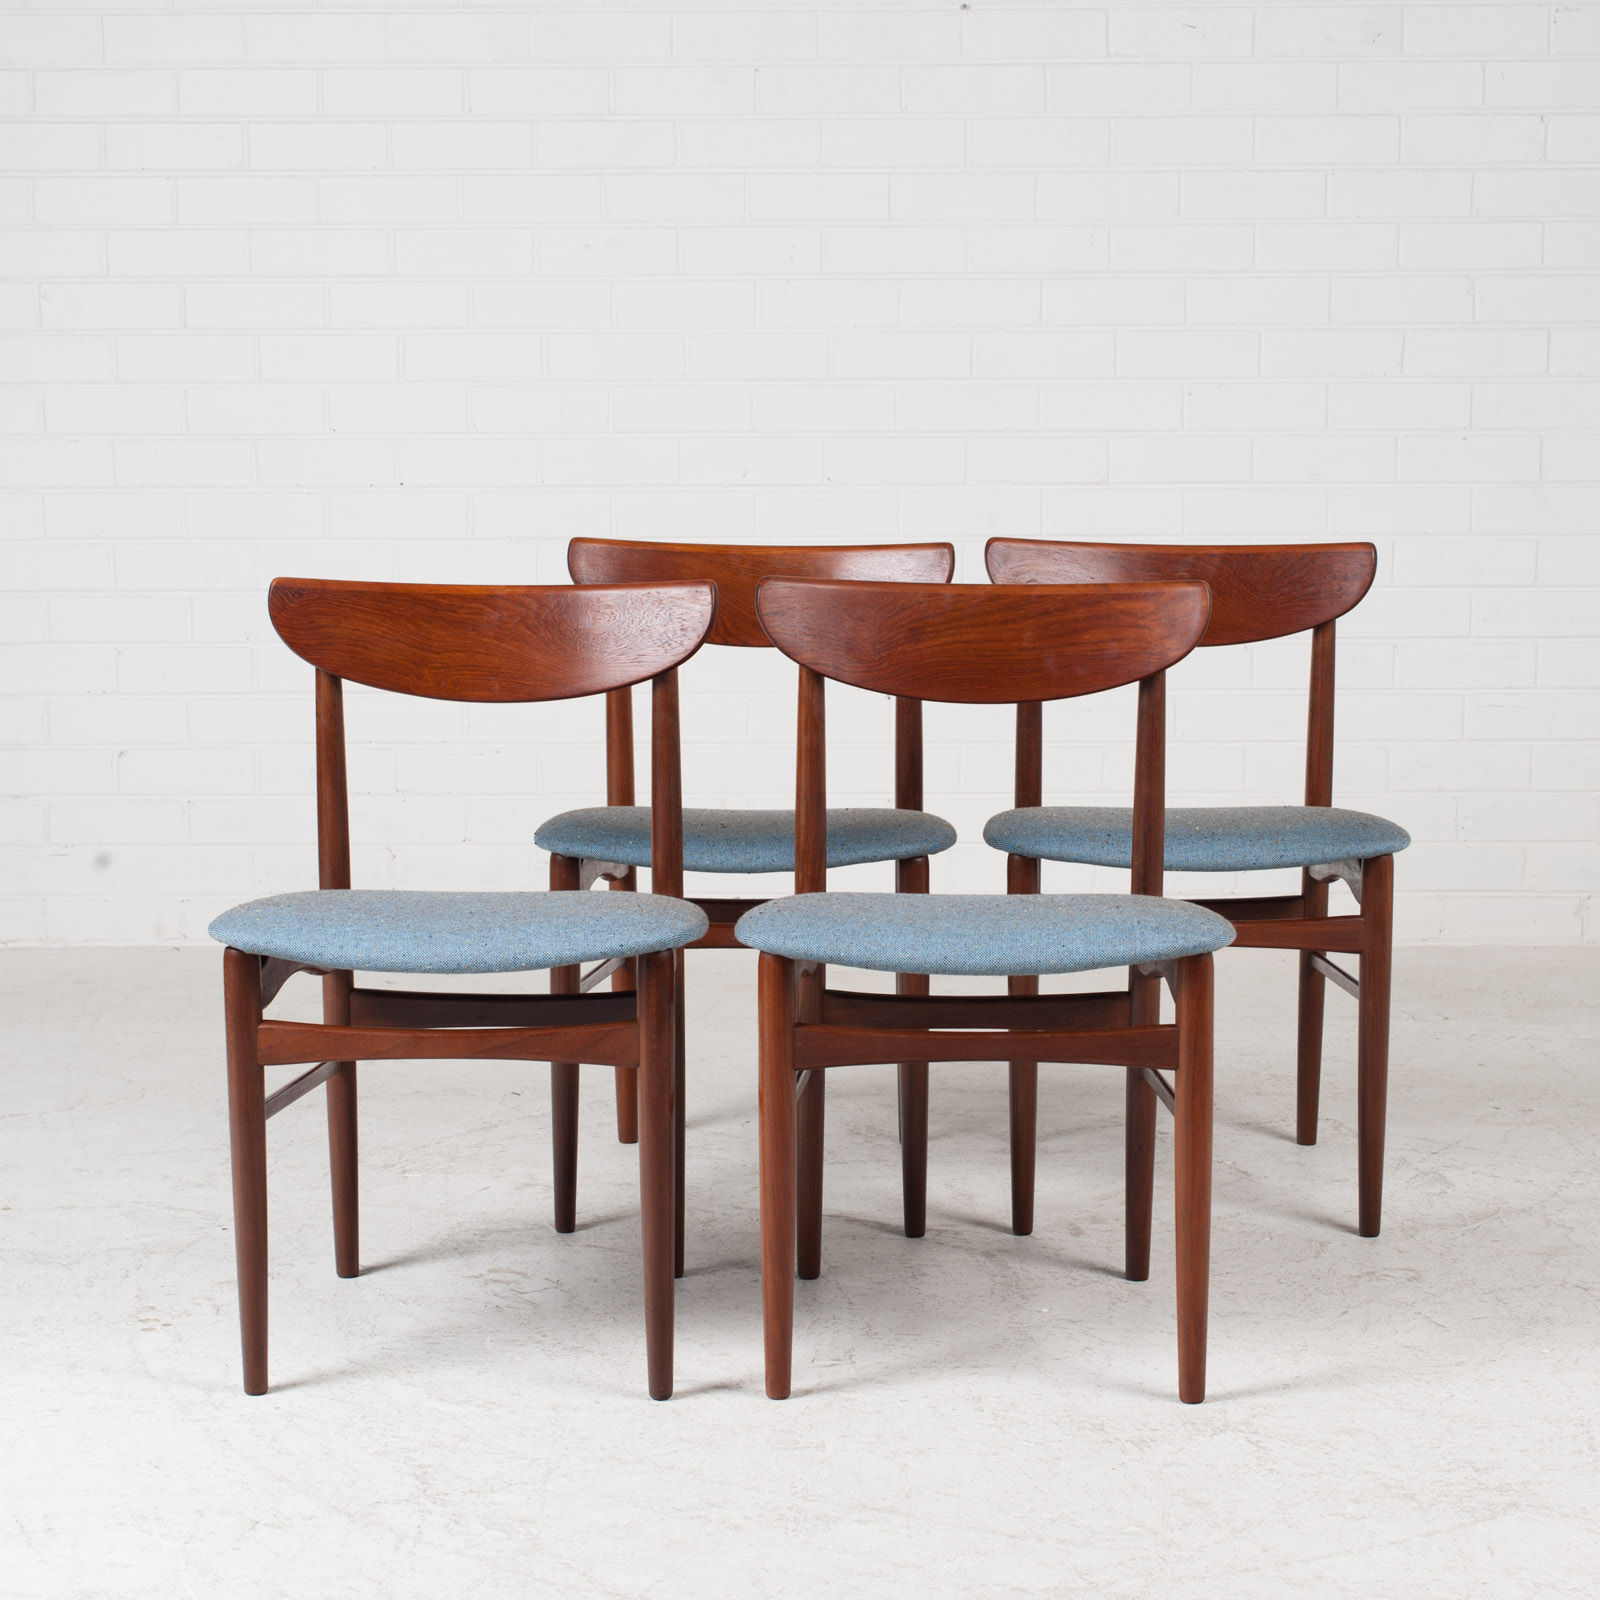 Set Of 4 Curved Lip Dining Chairs In Teak 1960s Denmark 14